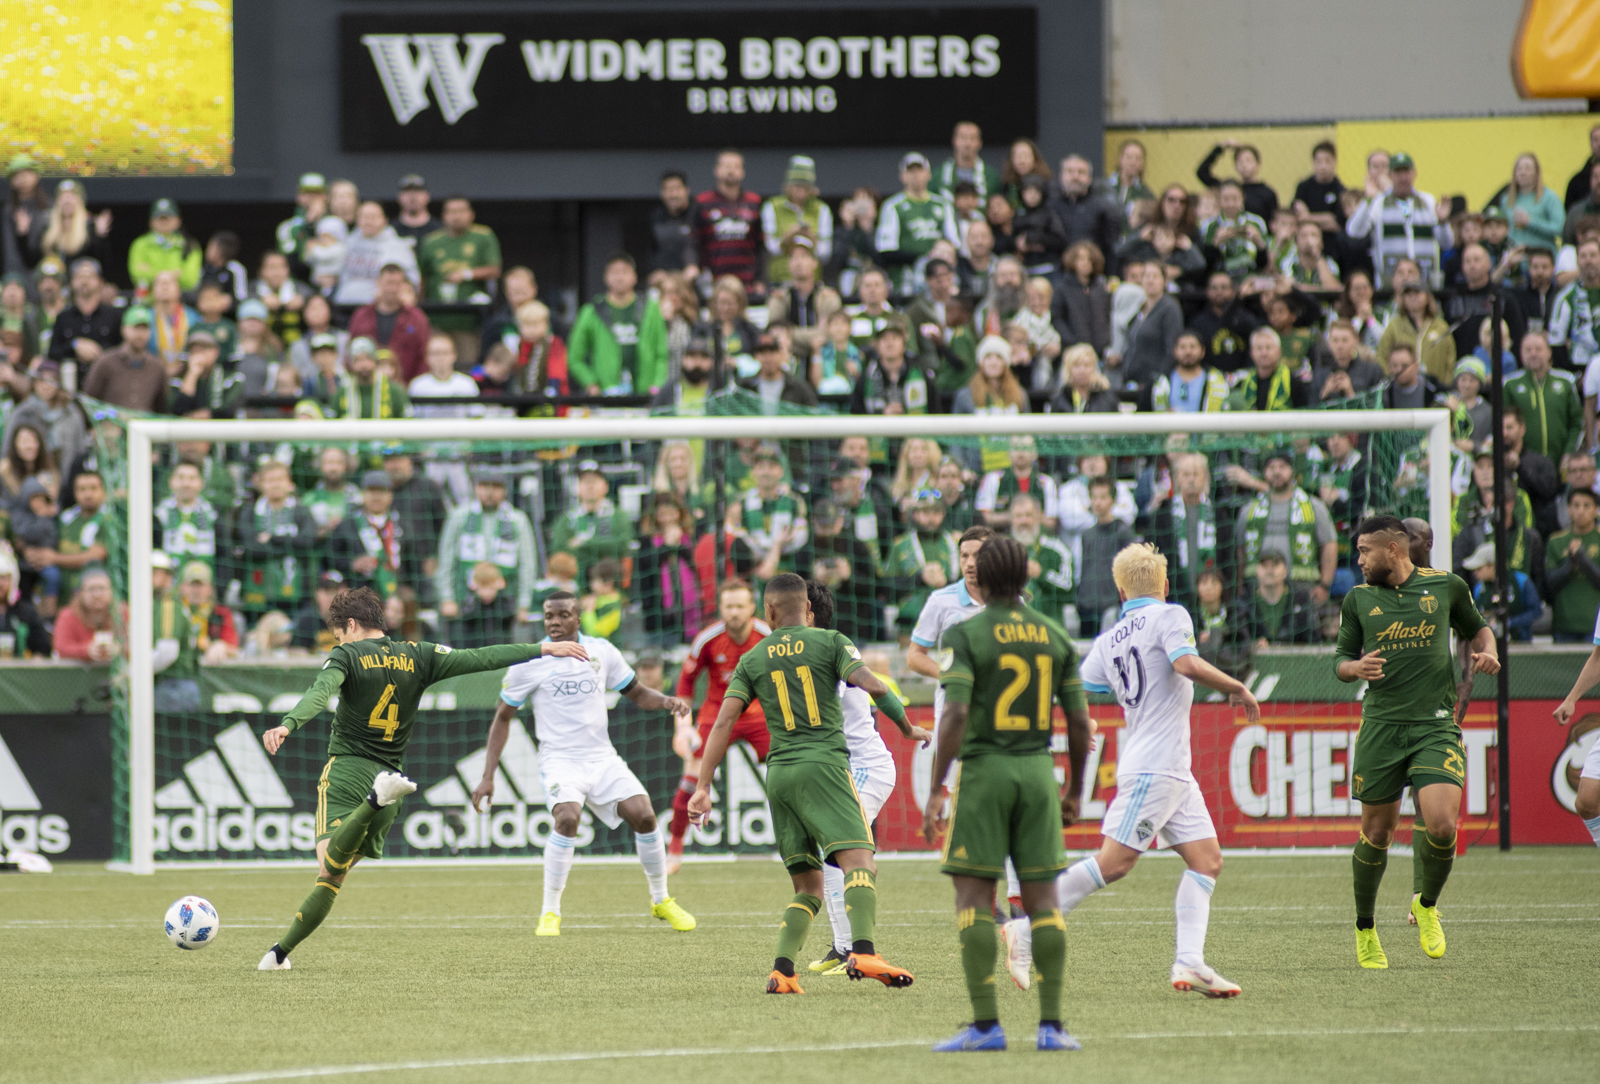 Sounders vs Timber70.jpg